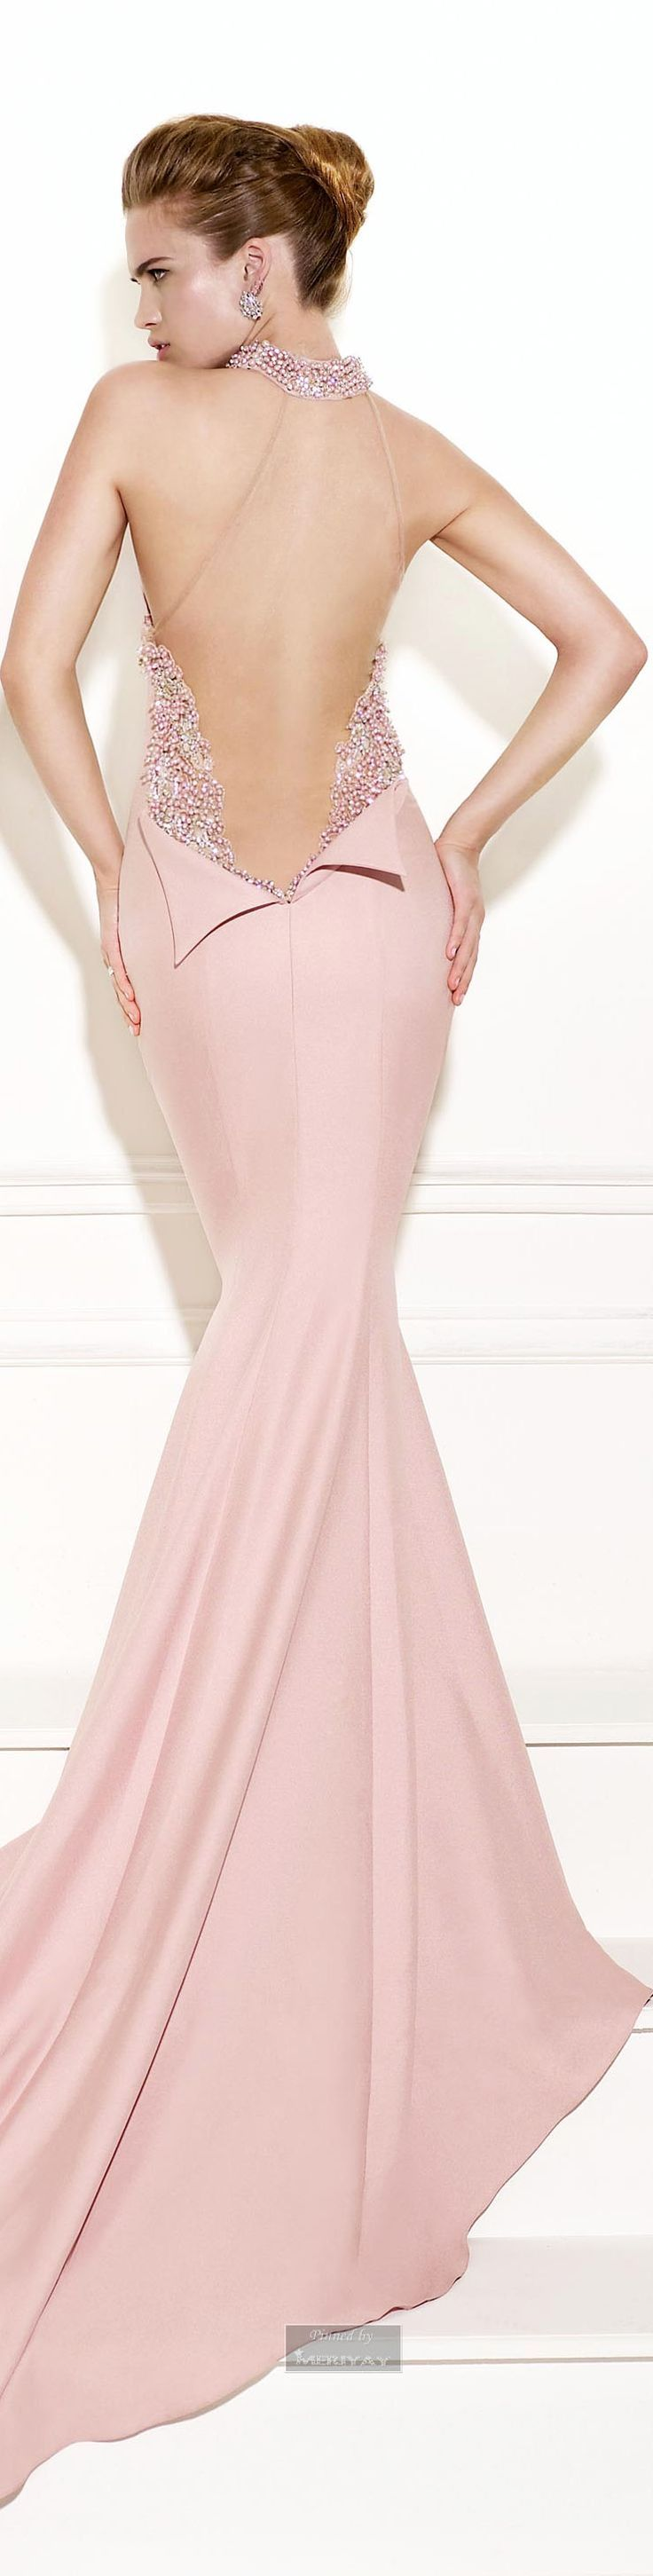 goodliness Cocktail Ball gowns dresses 2016 Cocktail gown 2017